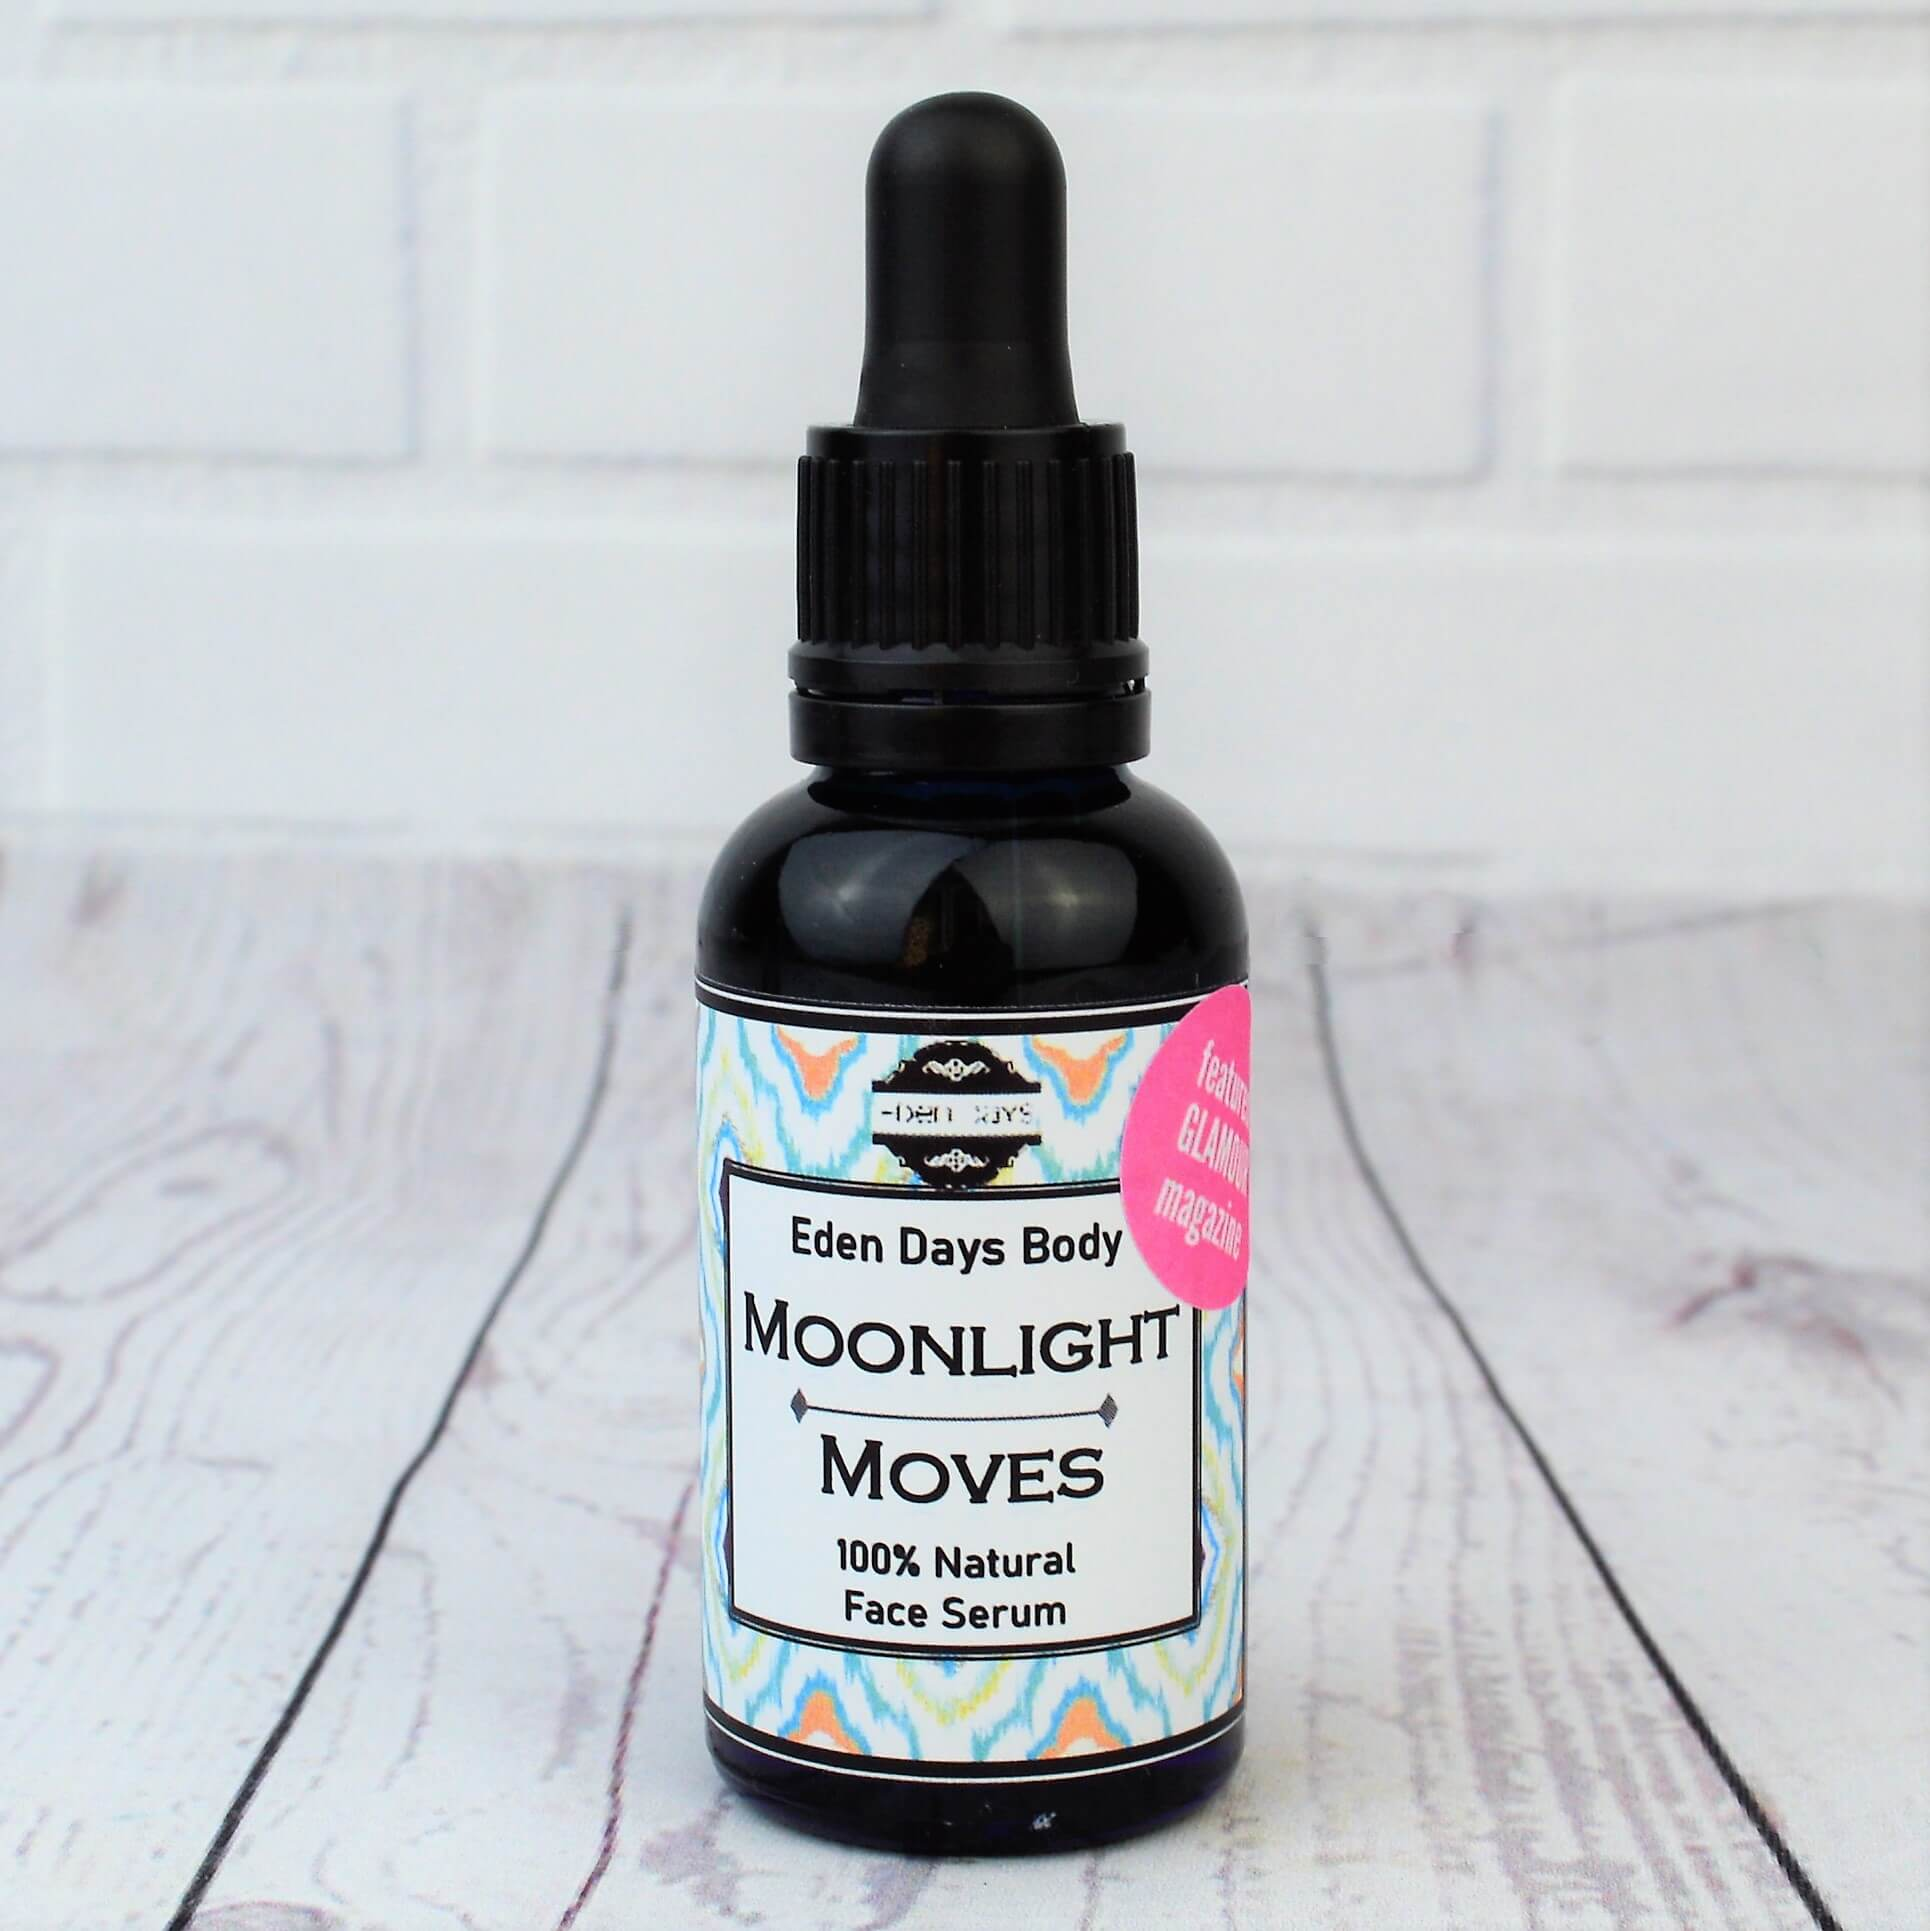 Moonlight Moves 100% Natural Face Serum